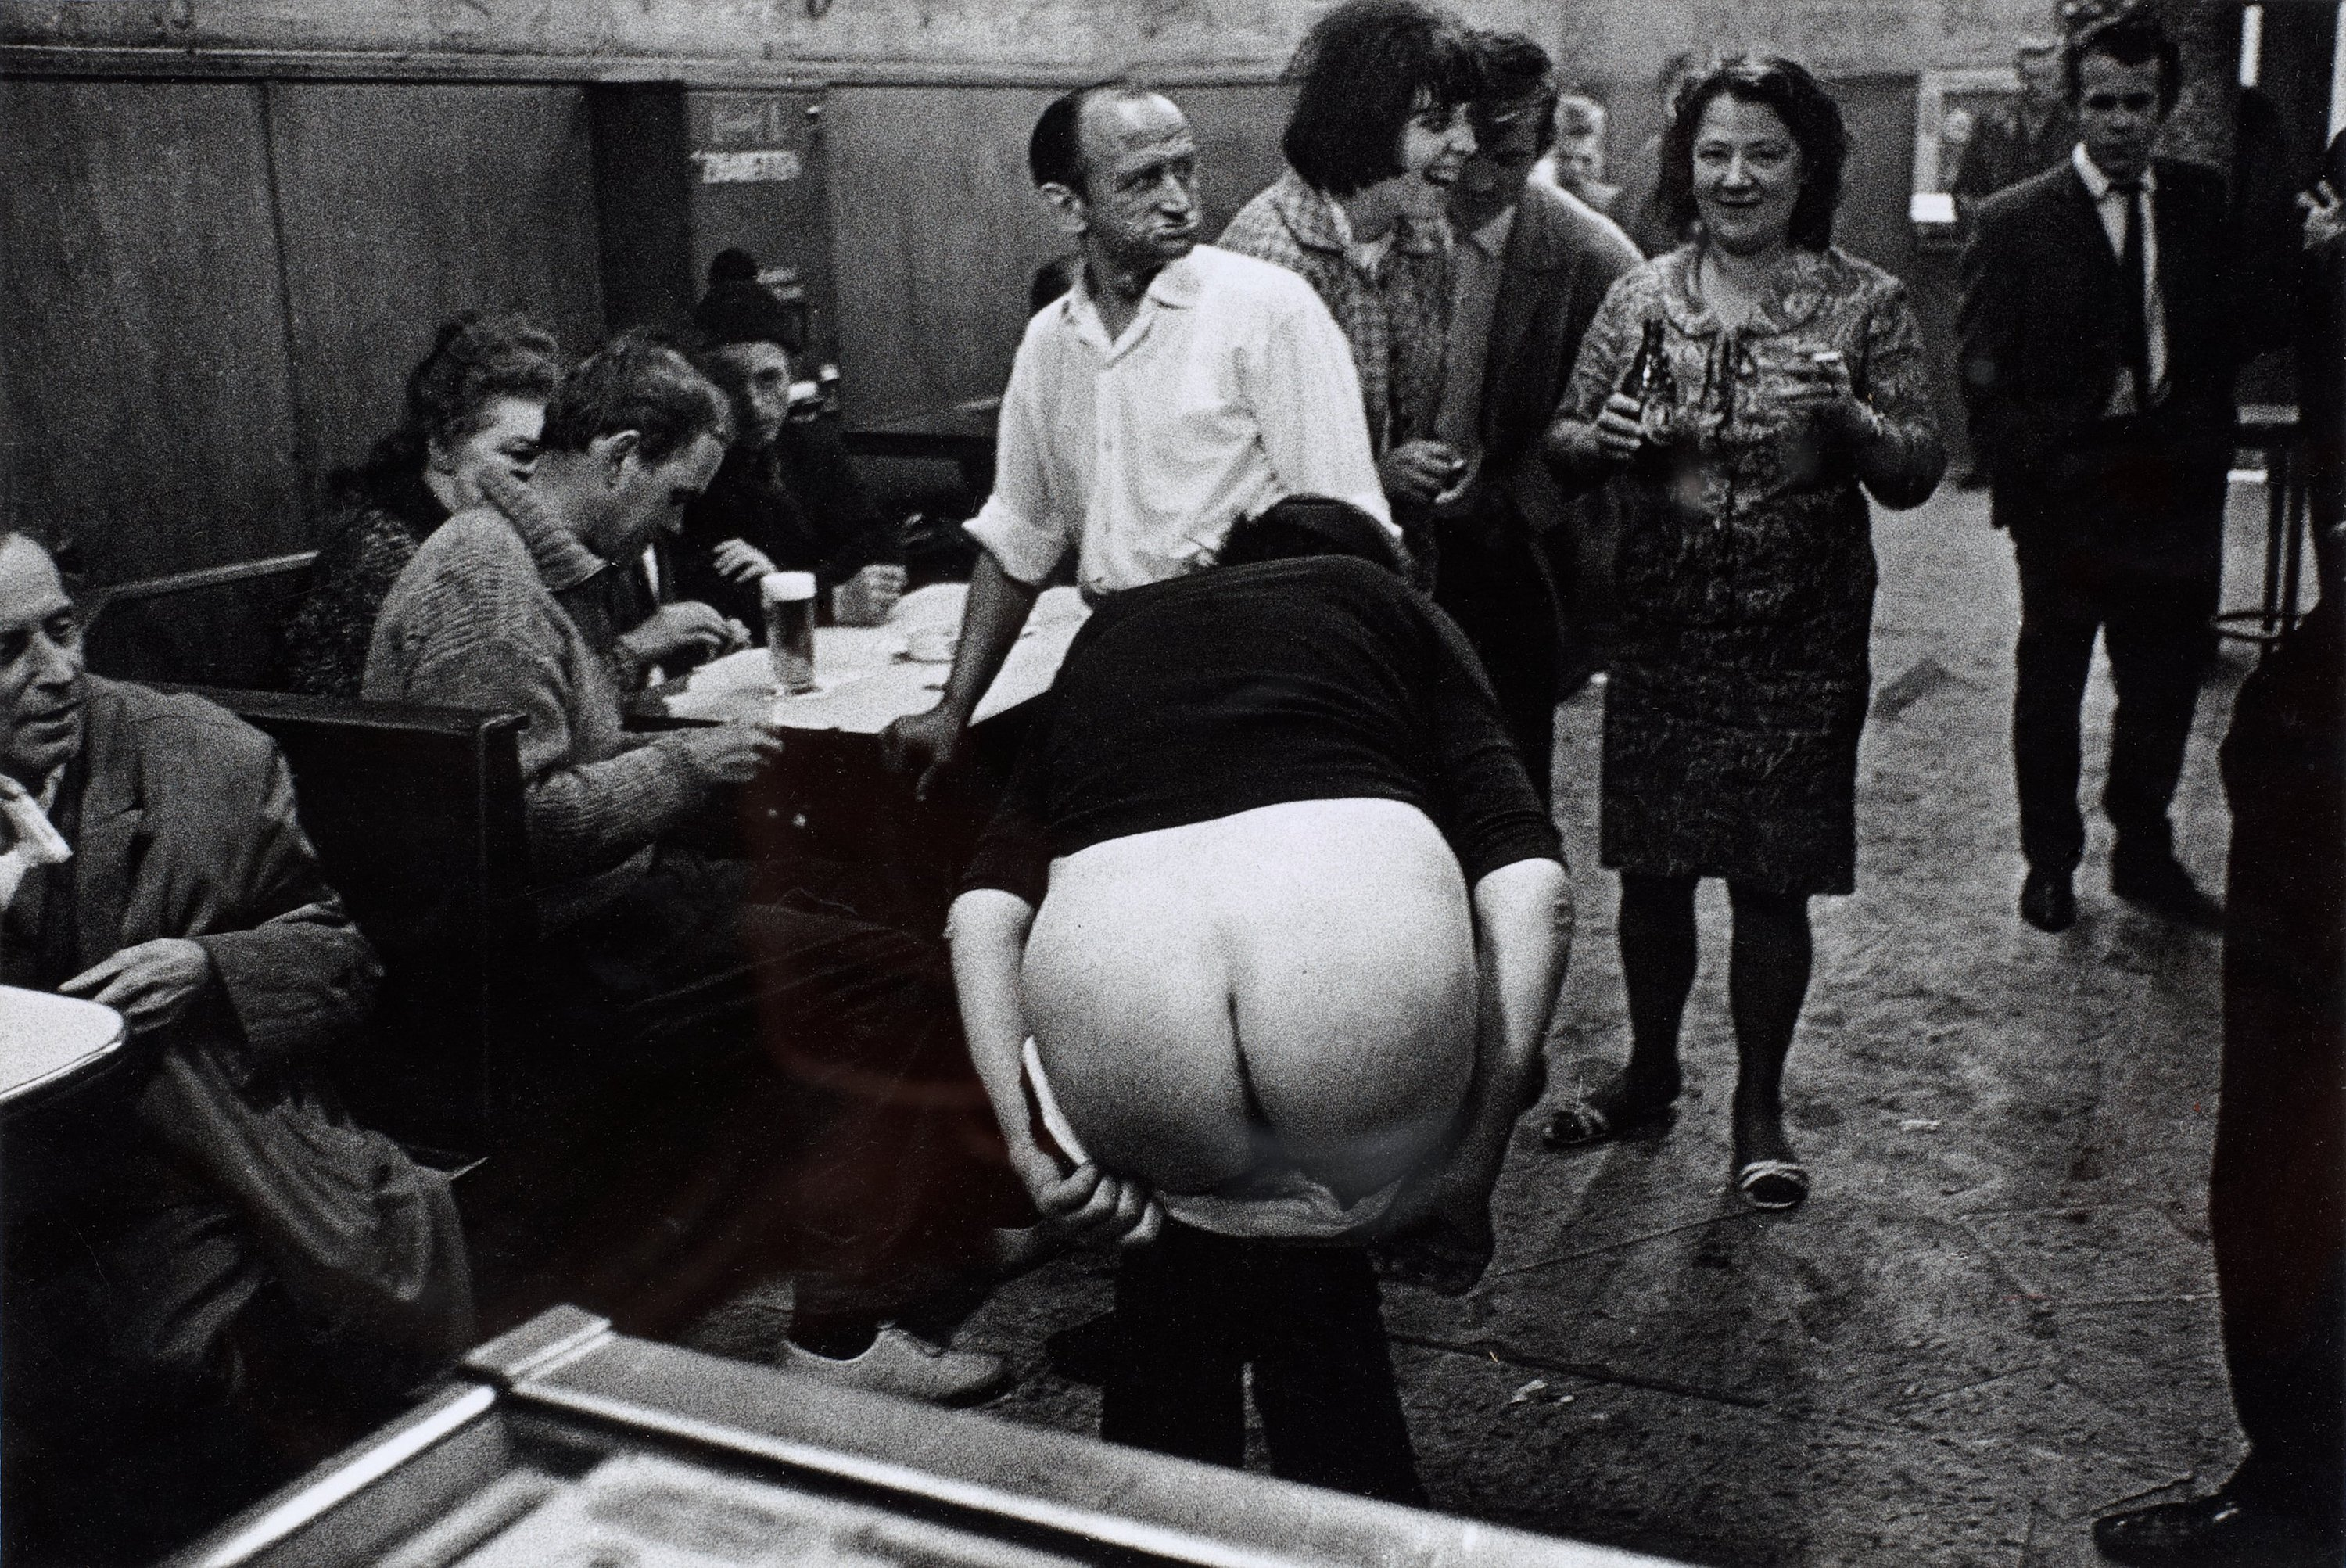 Exhibition Anders Petersen- Café Lehmitz